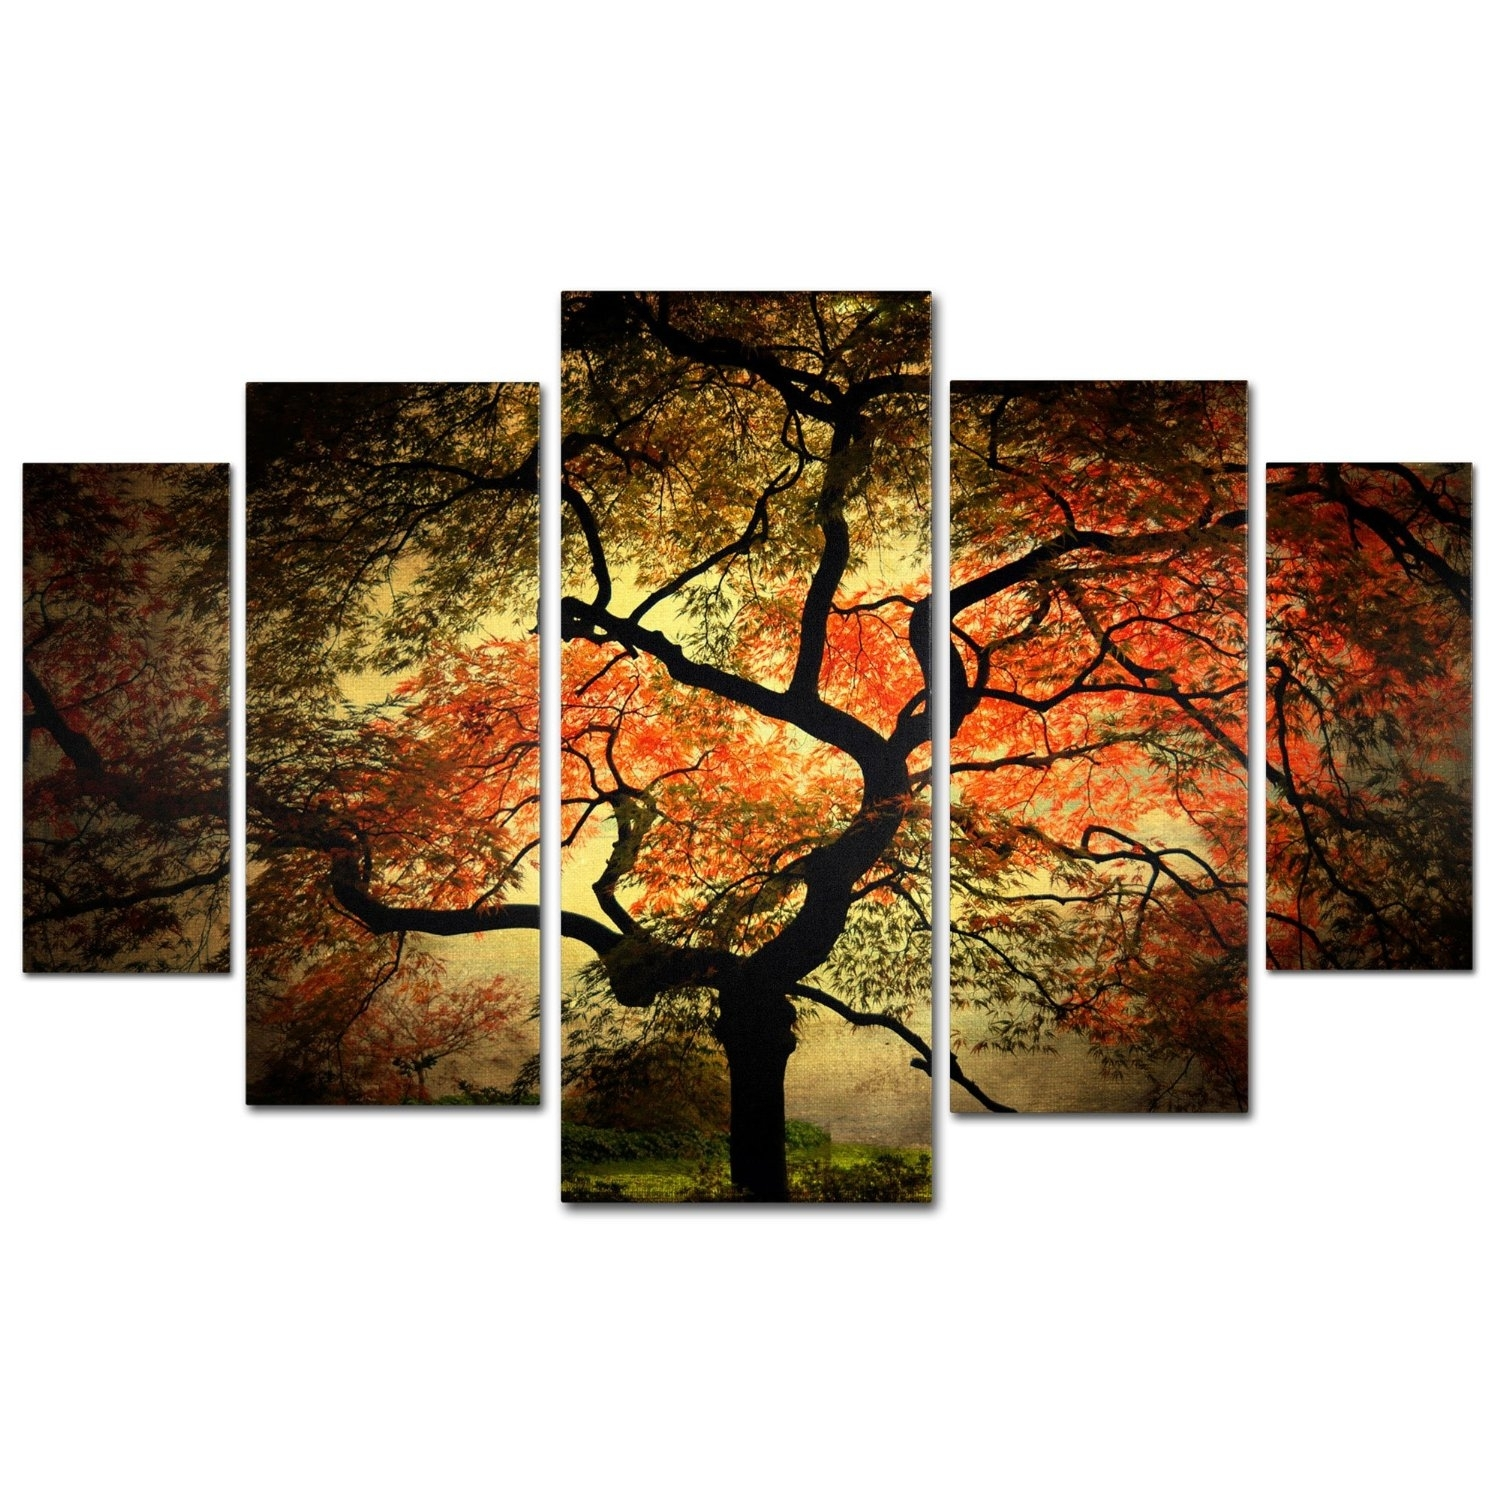 Wall Art Designs: Multi Panel Wall Art Pair Large Multi Panel Within Best And Newest Rustic Canvas Wall Art (View 6 of 15)